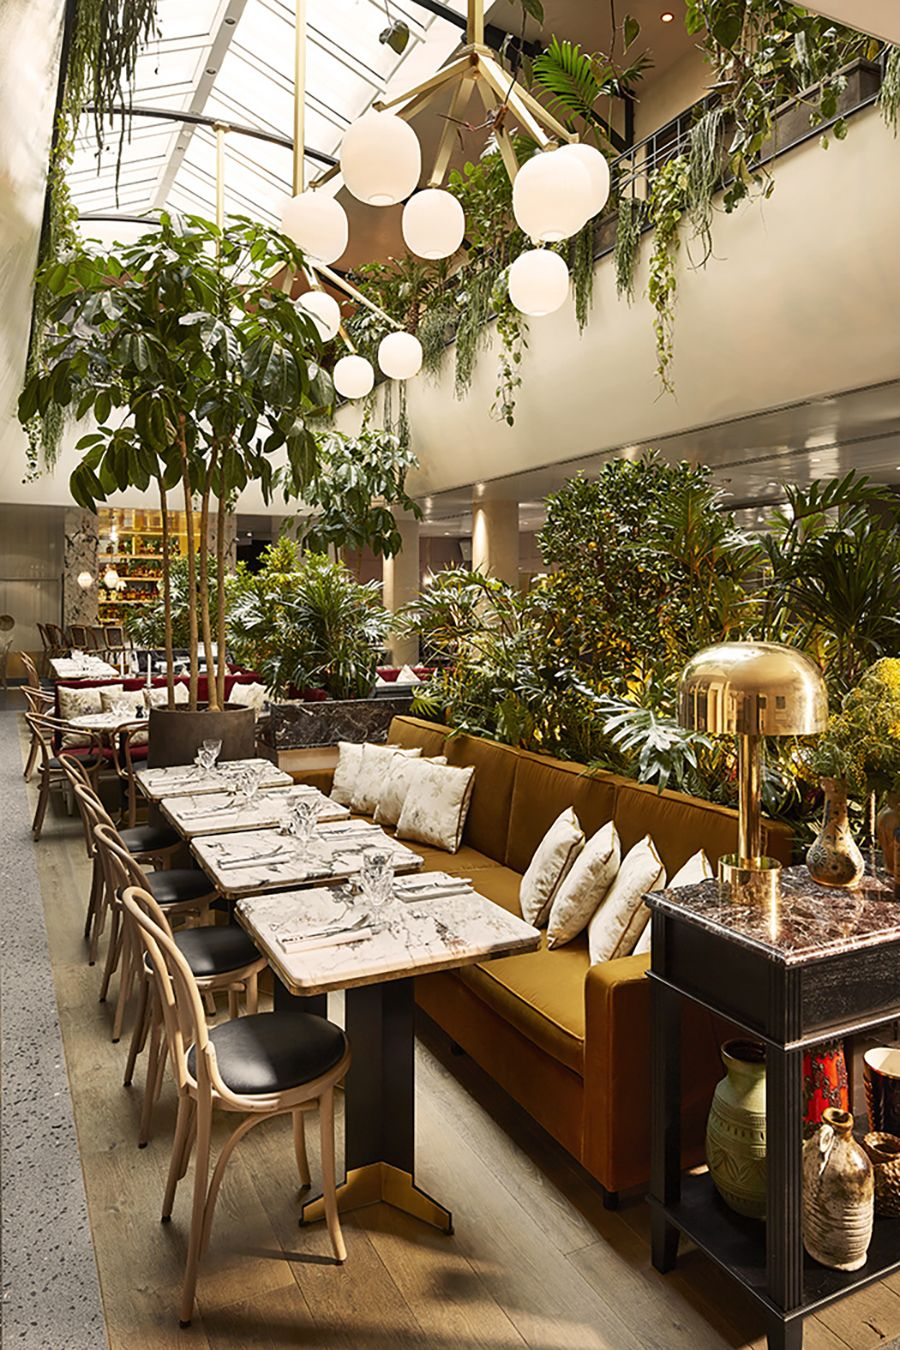 Green Is In With Images Restaurant Interior Design Restaurant